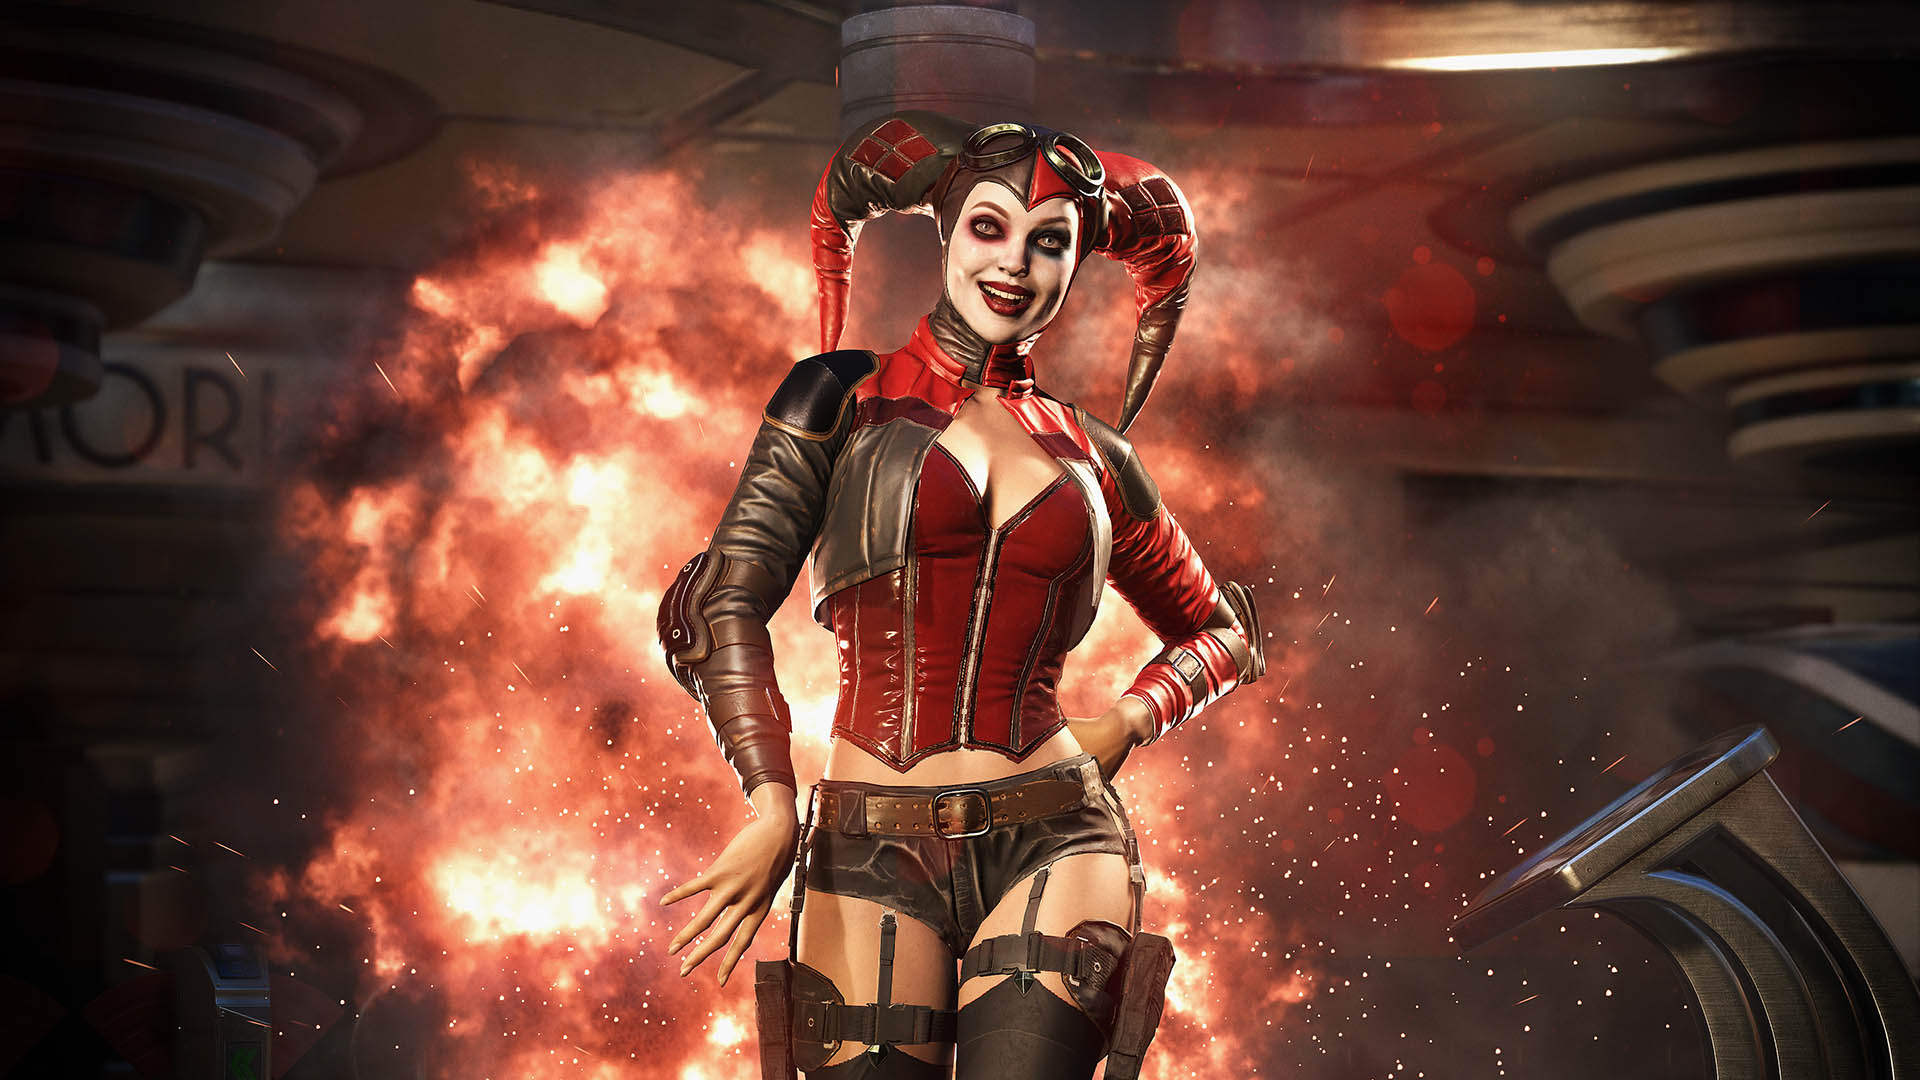 Injustice 2 Harley Quin Game